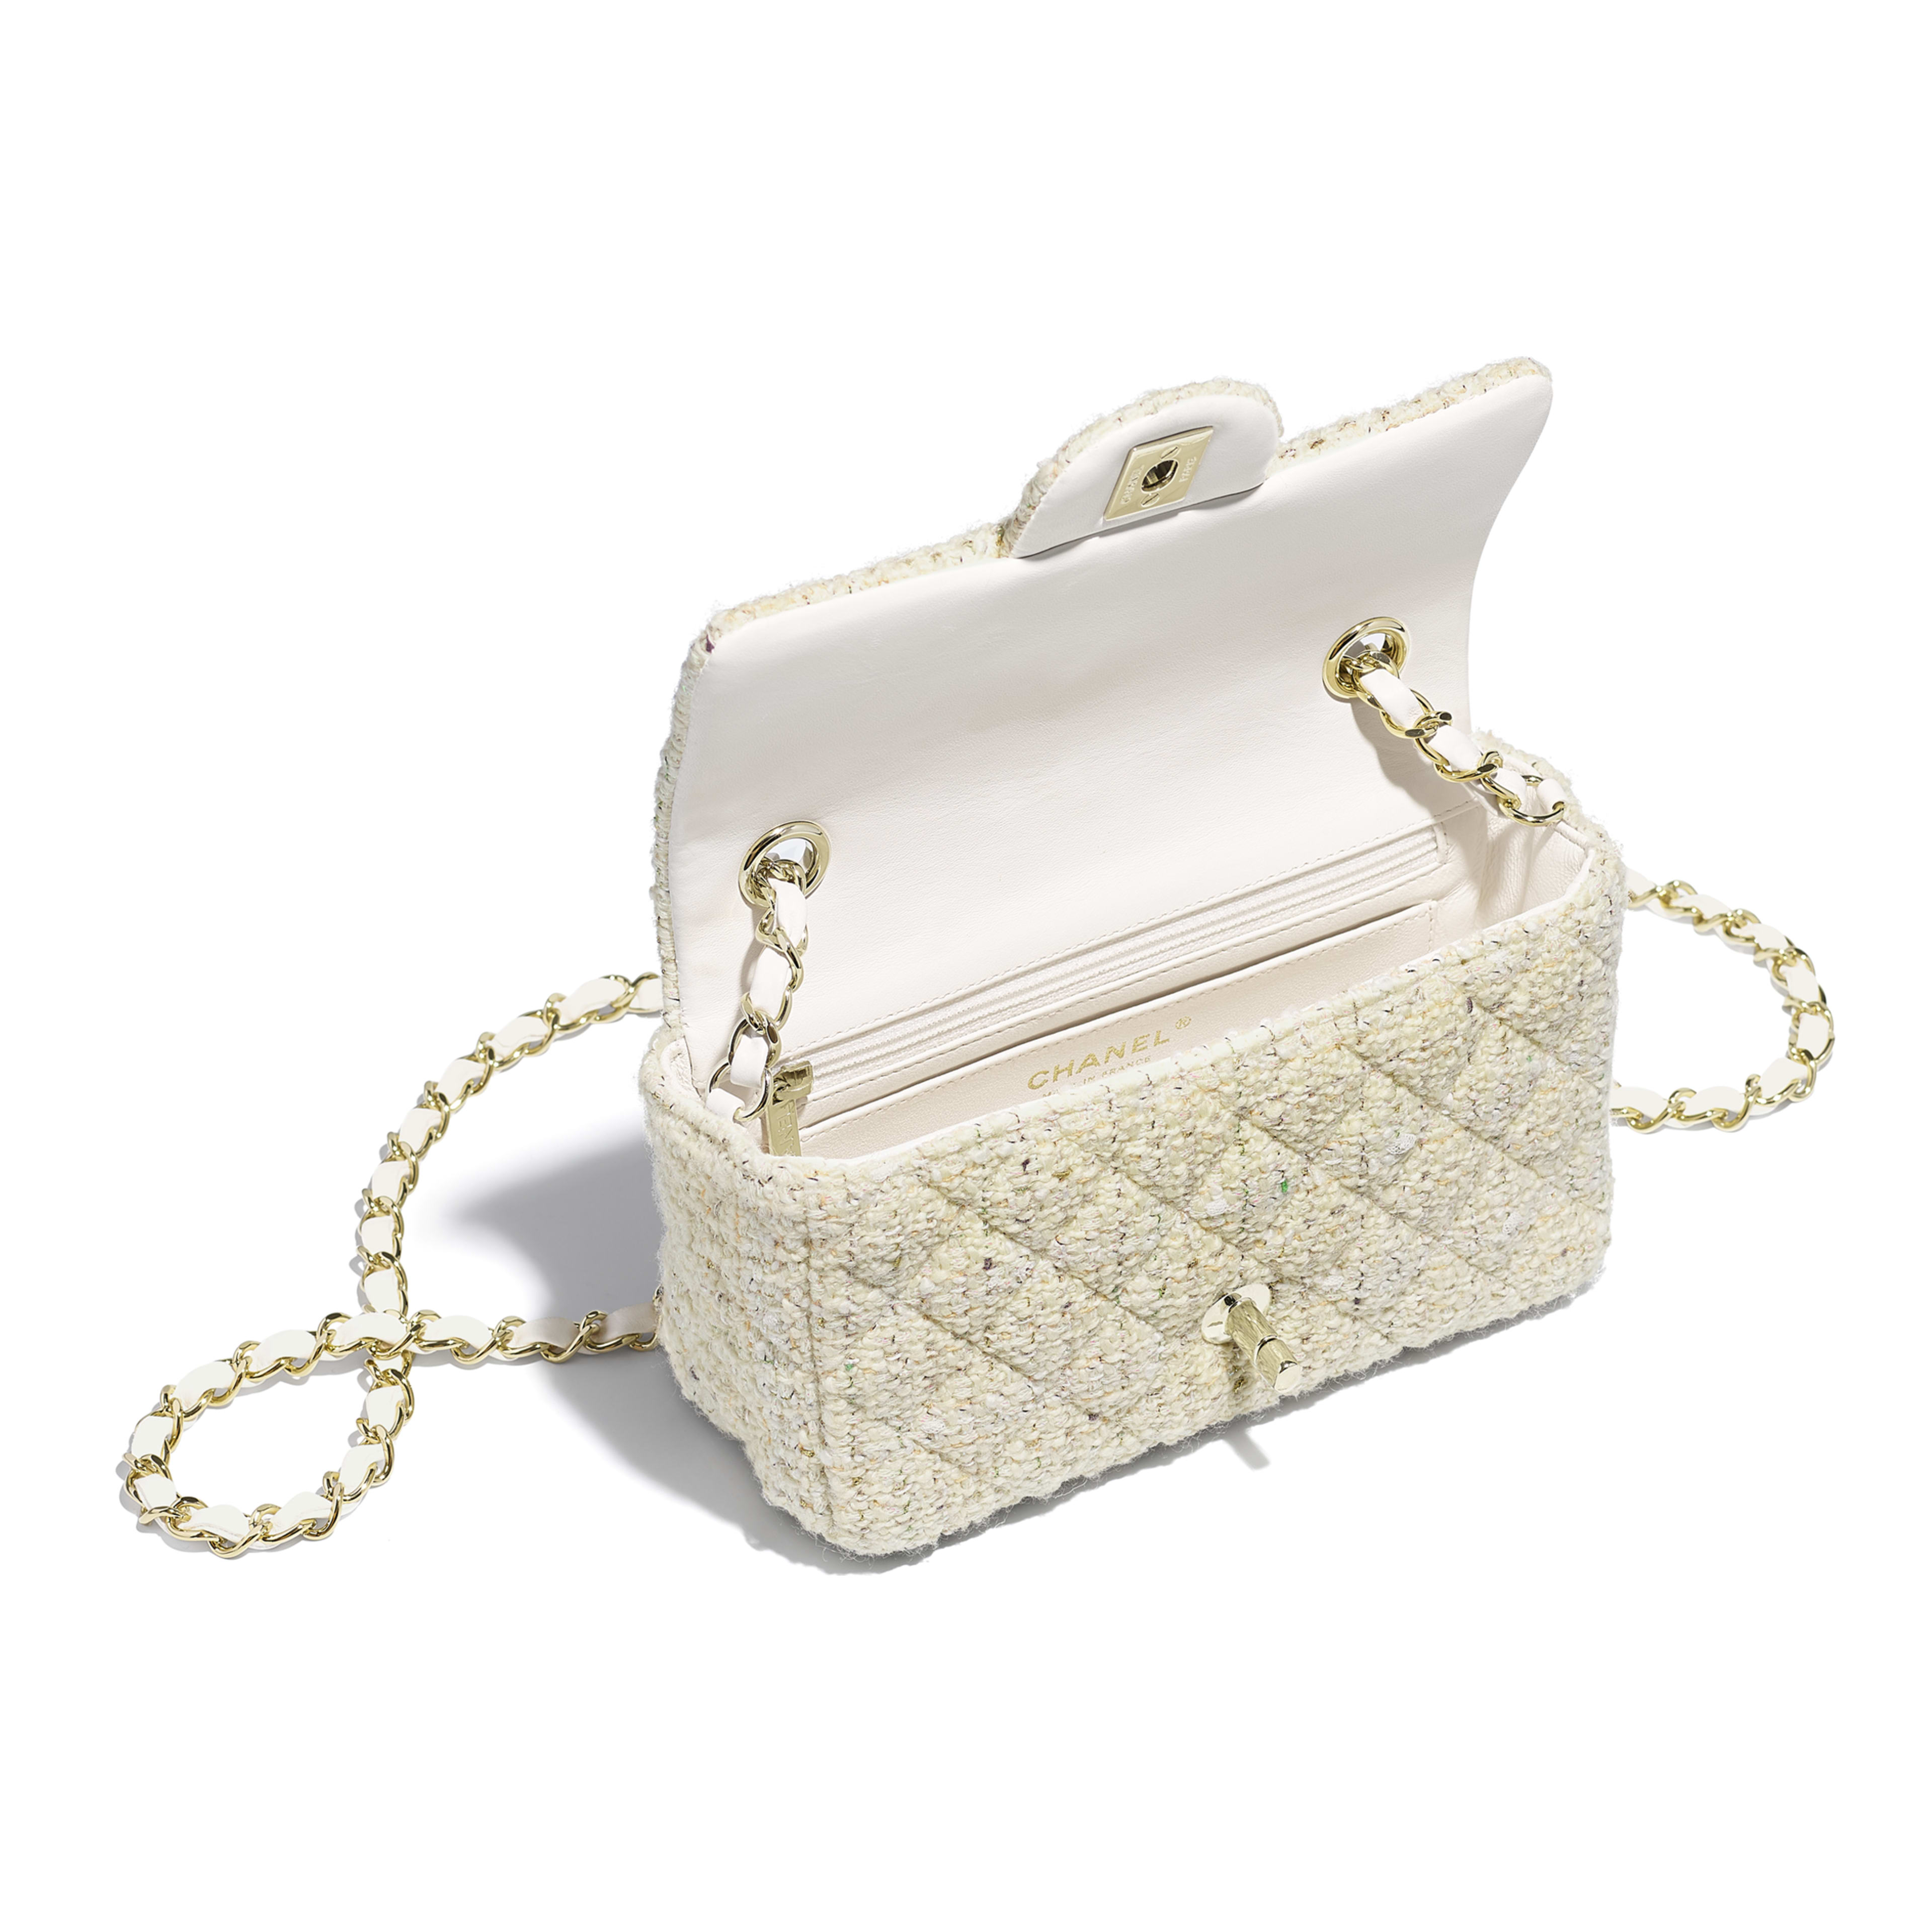 Mini Flap Bag - Ecru, white, green & gold - Tweed & Gold-Tone Metal - Other view - see full sized version